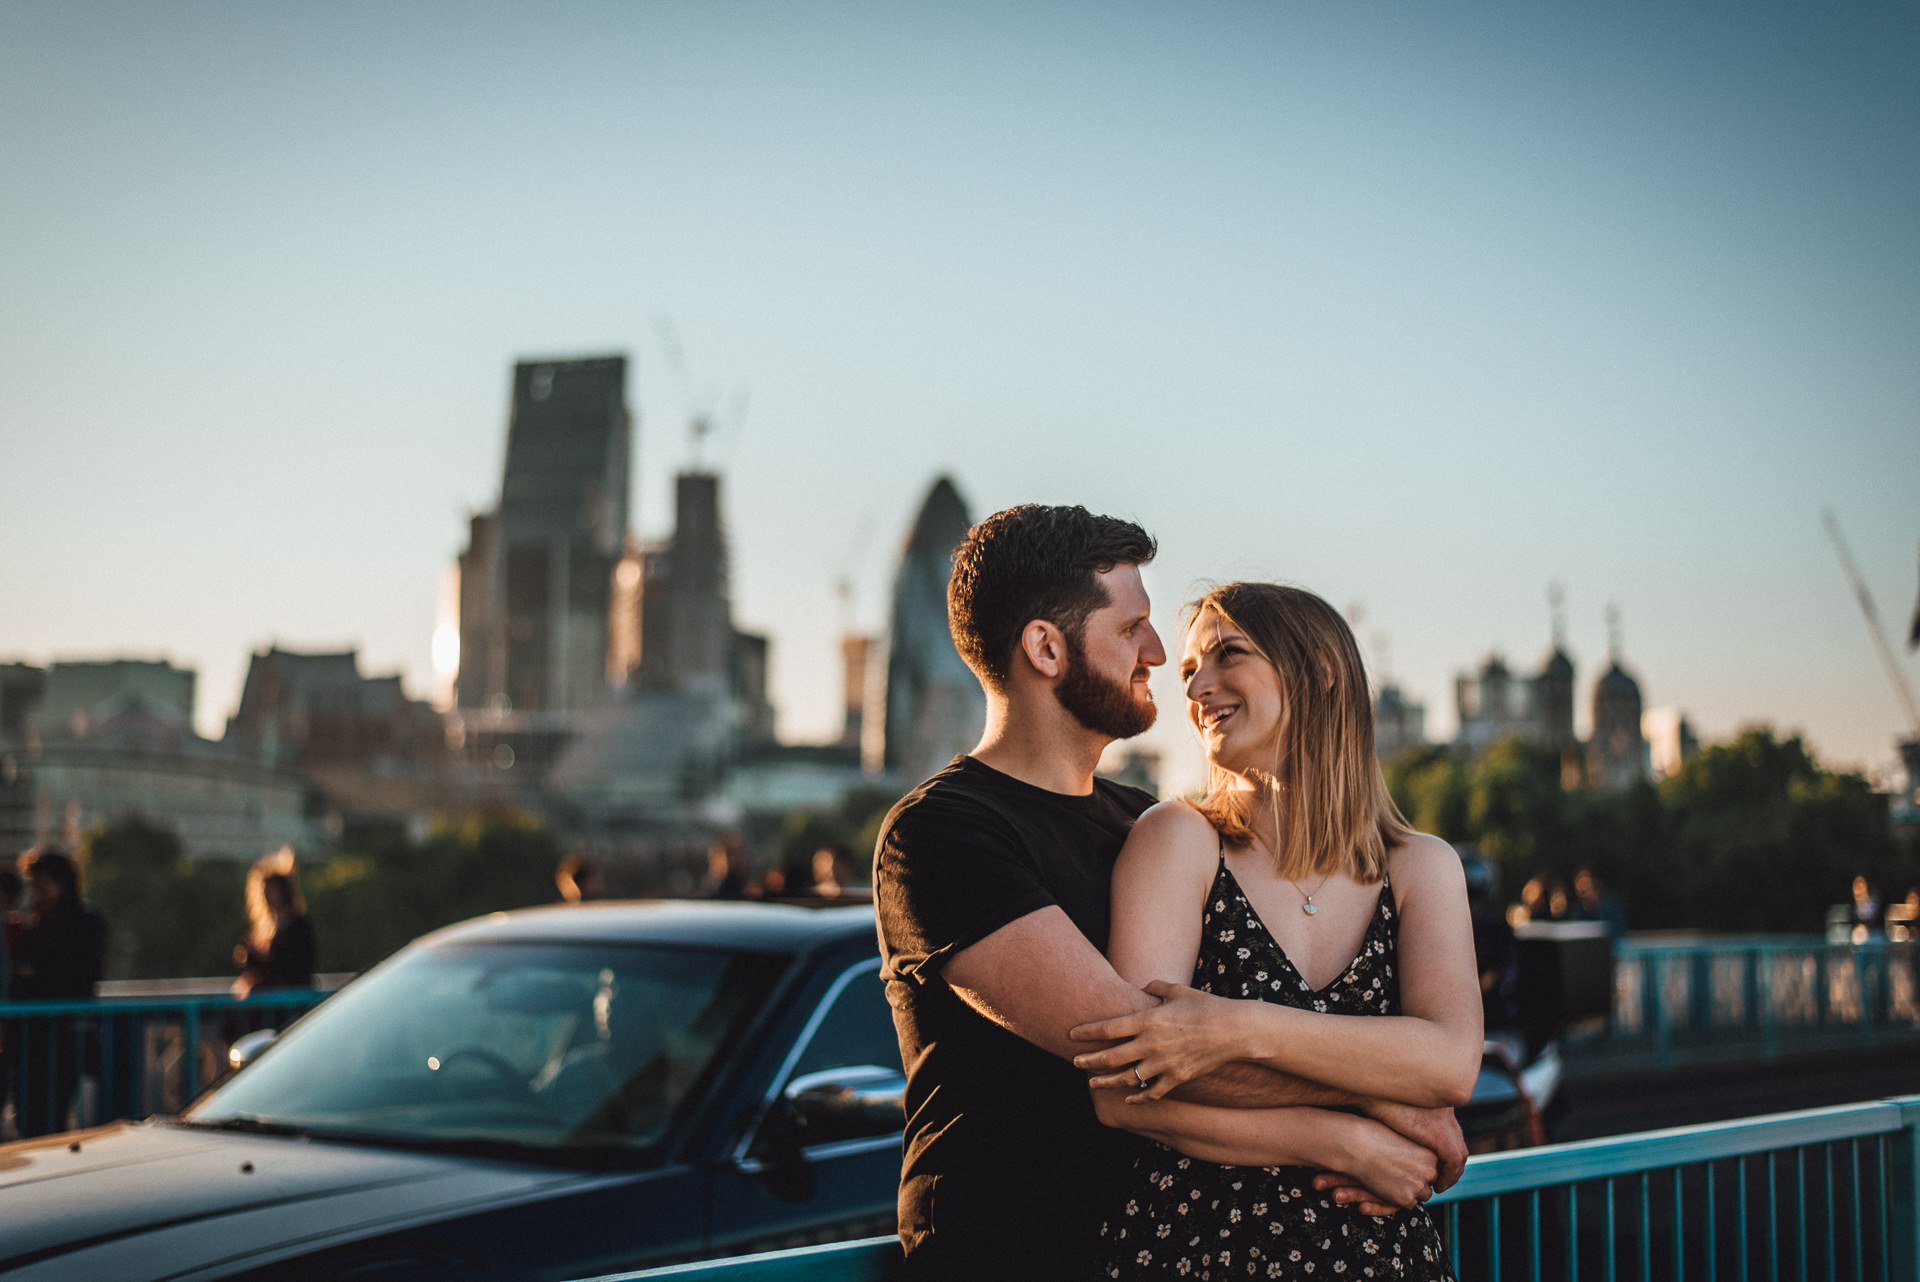 Couple embrace on Tower Bridge, London. Fun, romantic london engagement shoot ideas